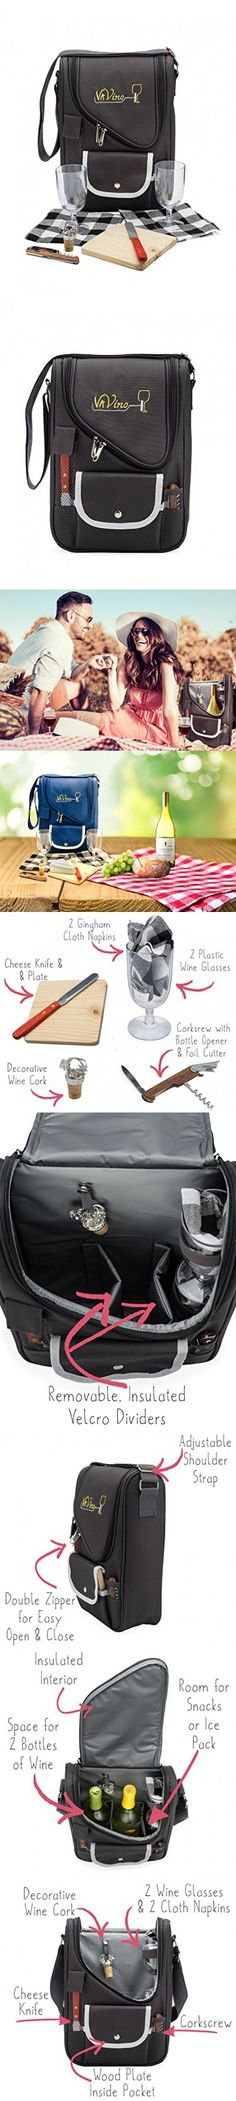 VaVino Wine and Cheese Picnic Set Bag (Charcoal Gray) 9-Piece Deluxe Set with 18-Hour Insulation - Fits 2 Bottles and Everything You Need for a Romantic Picnic for 2. Great Gift for Wine Lovers!